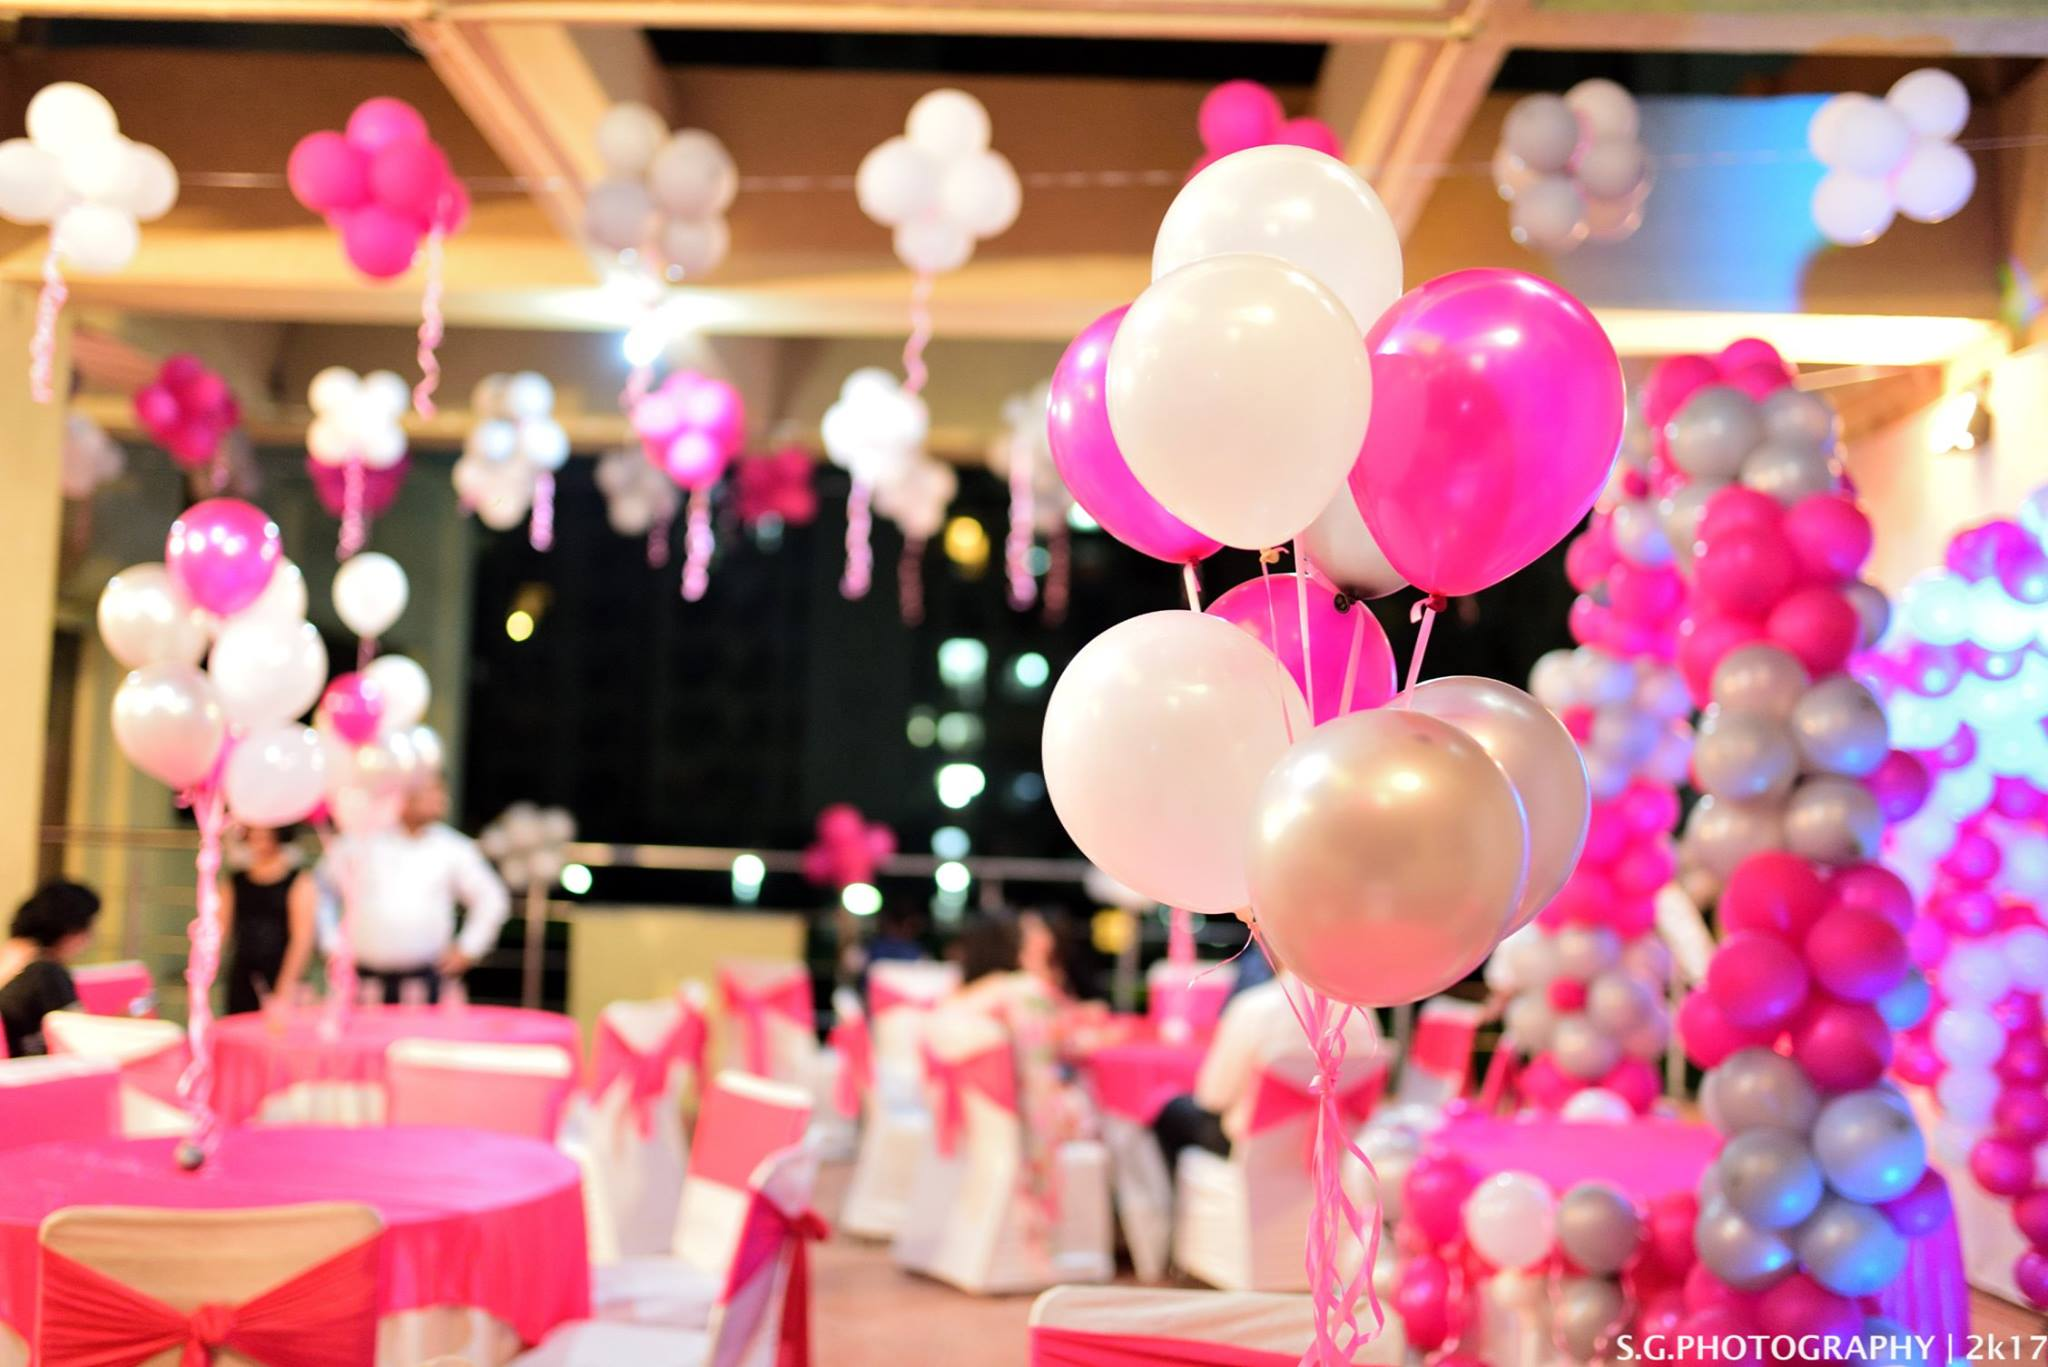 Check Out These 5 Essential Things To Consider Before Selecting Your Kid's First Birthday Party Venue!